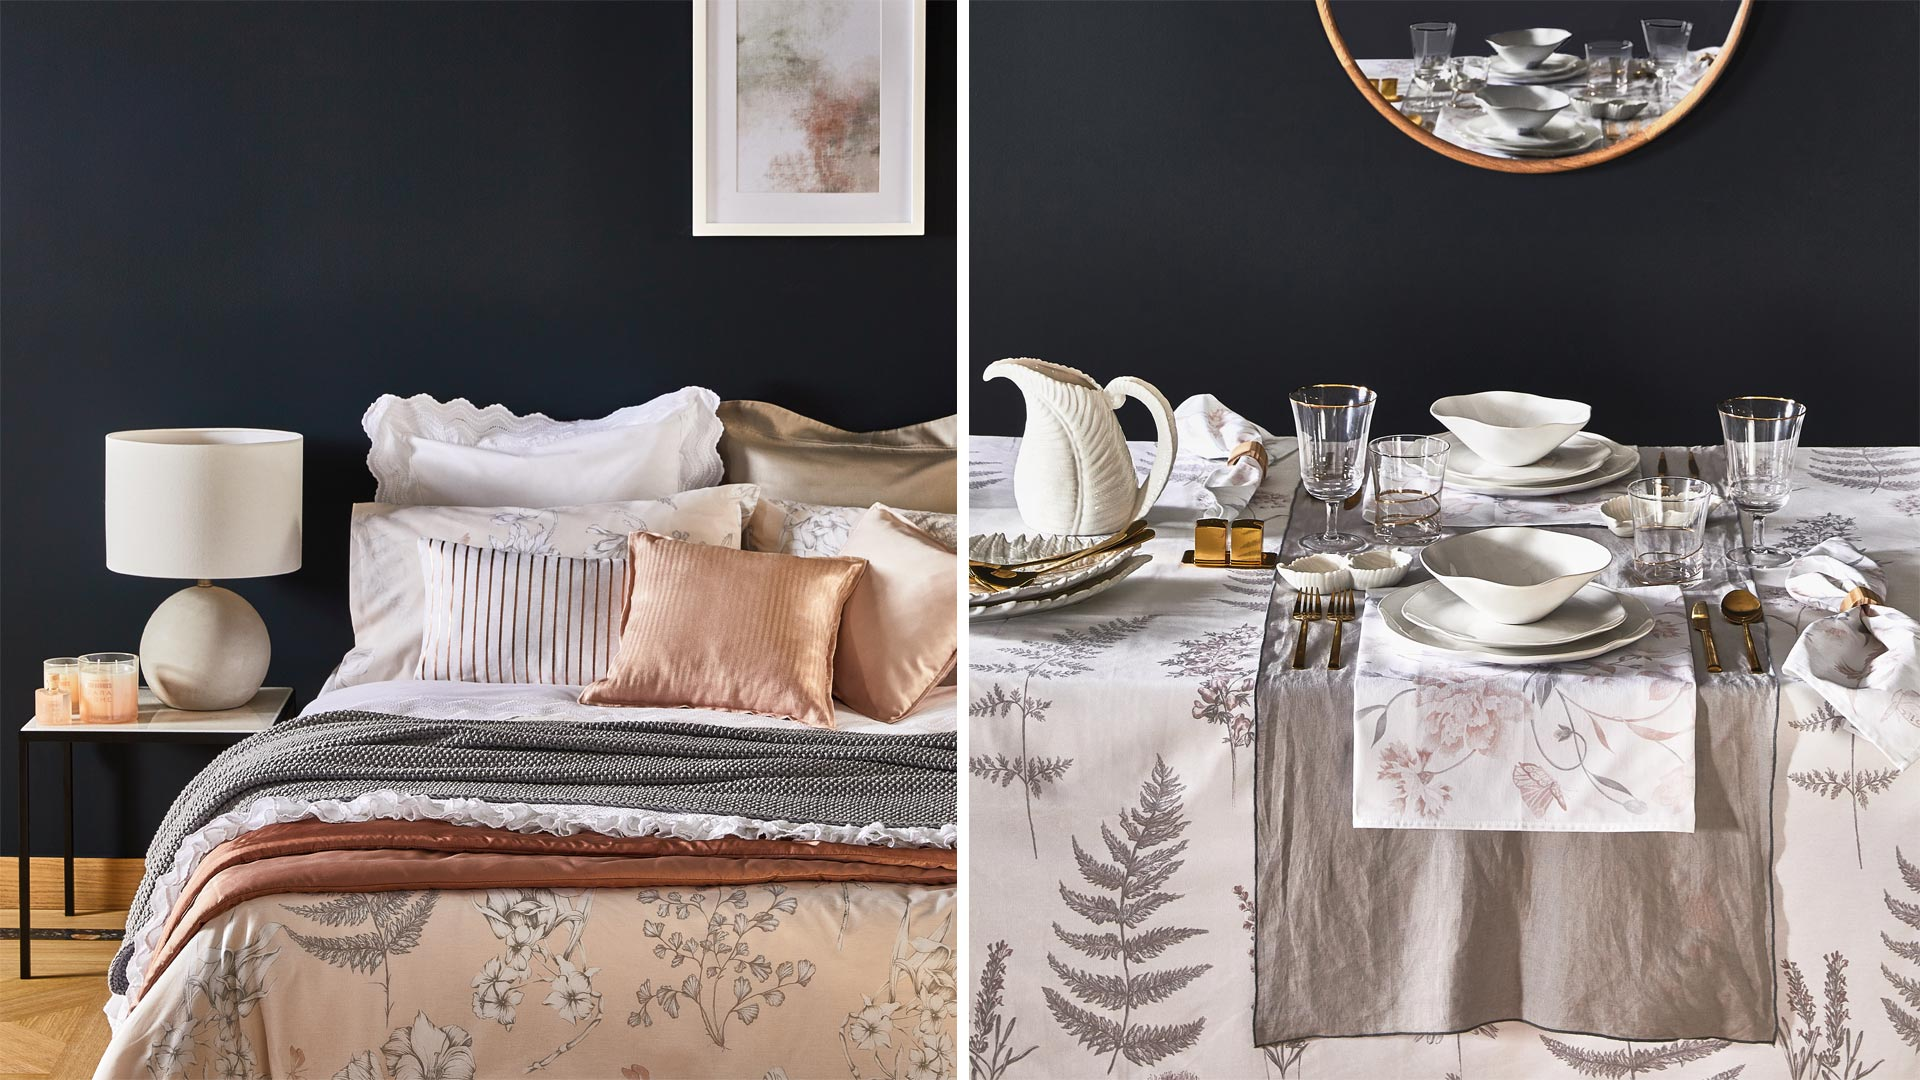 Zara Home Set De Table. Find This Pin And More On Slection Art De La ...